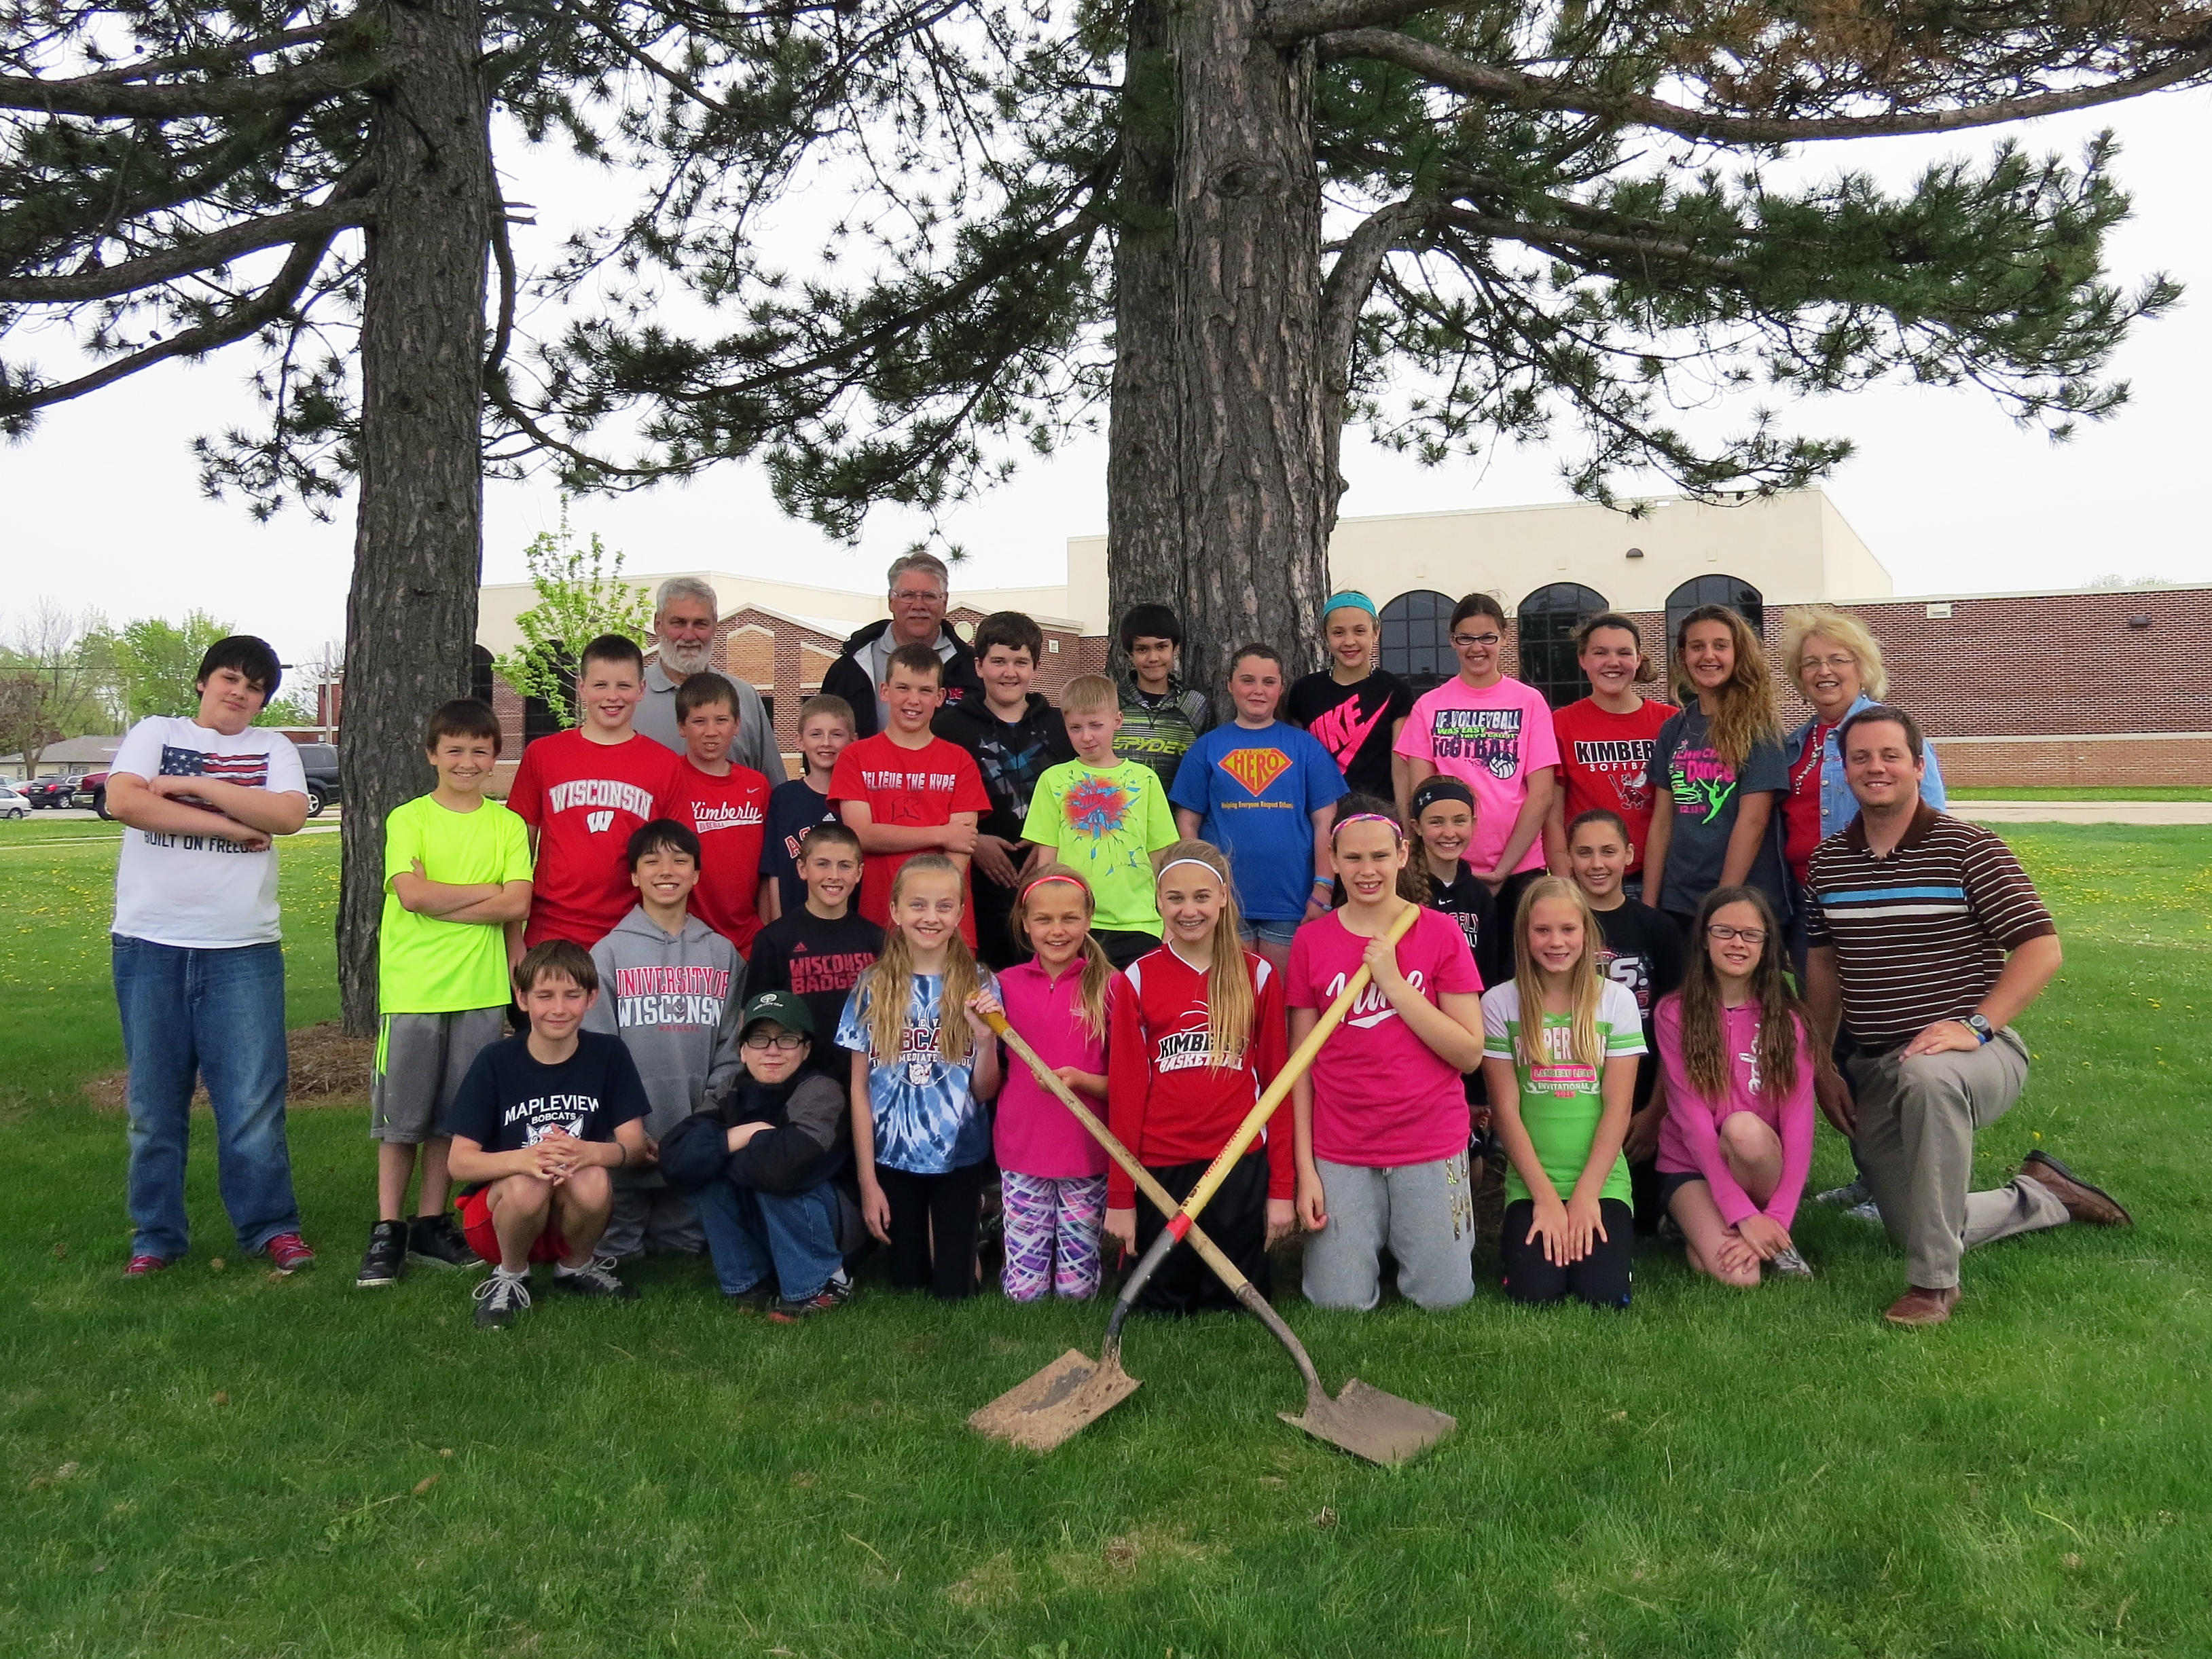 Mapleview students planted trees during Arbor Day 2015 with officials from the Village of Kimberly.